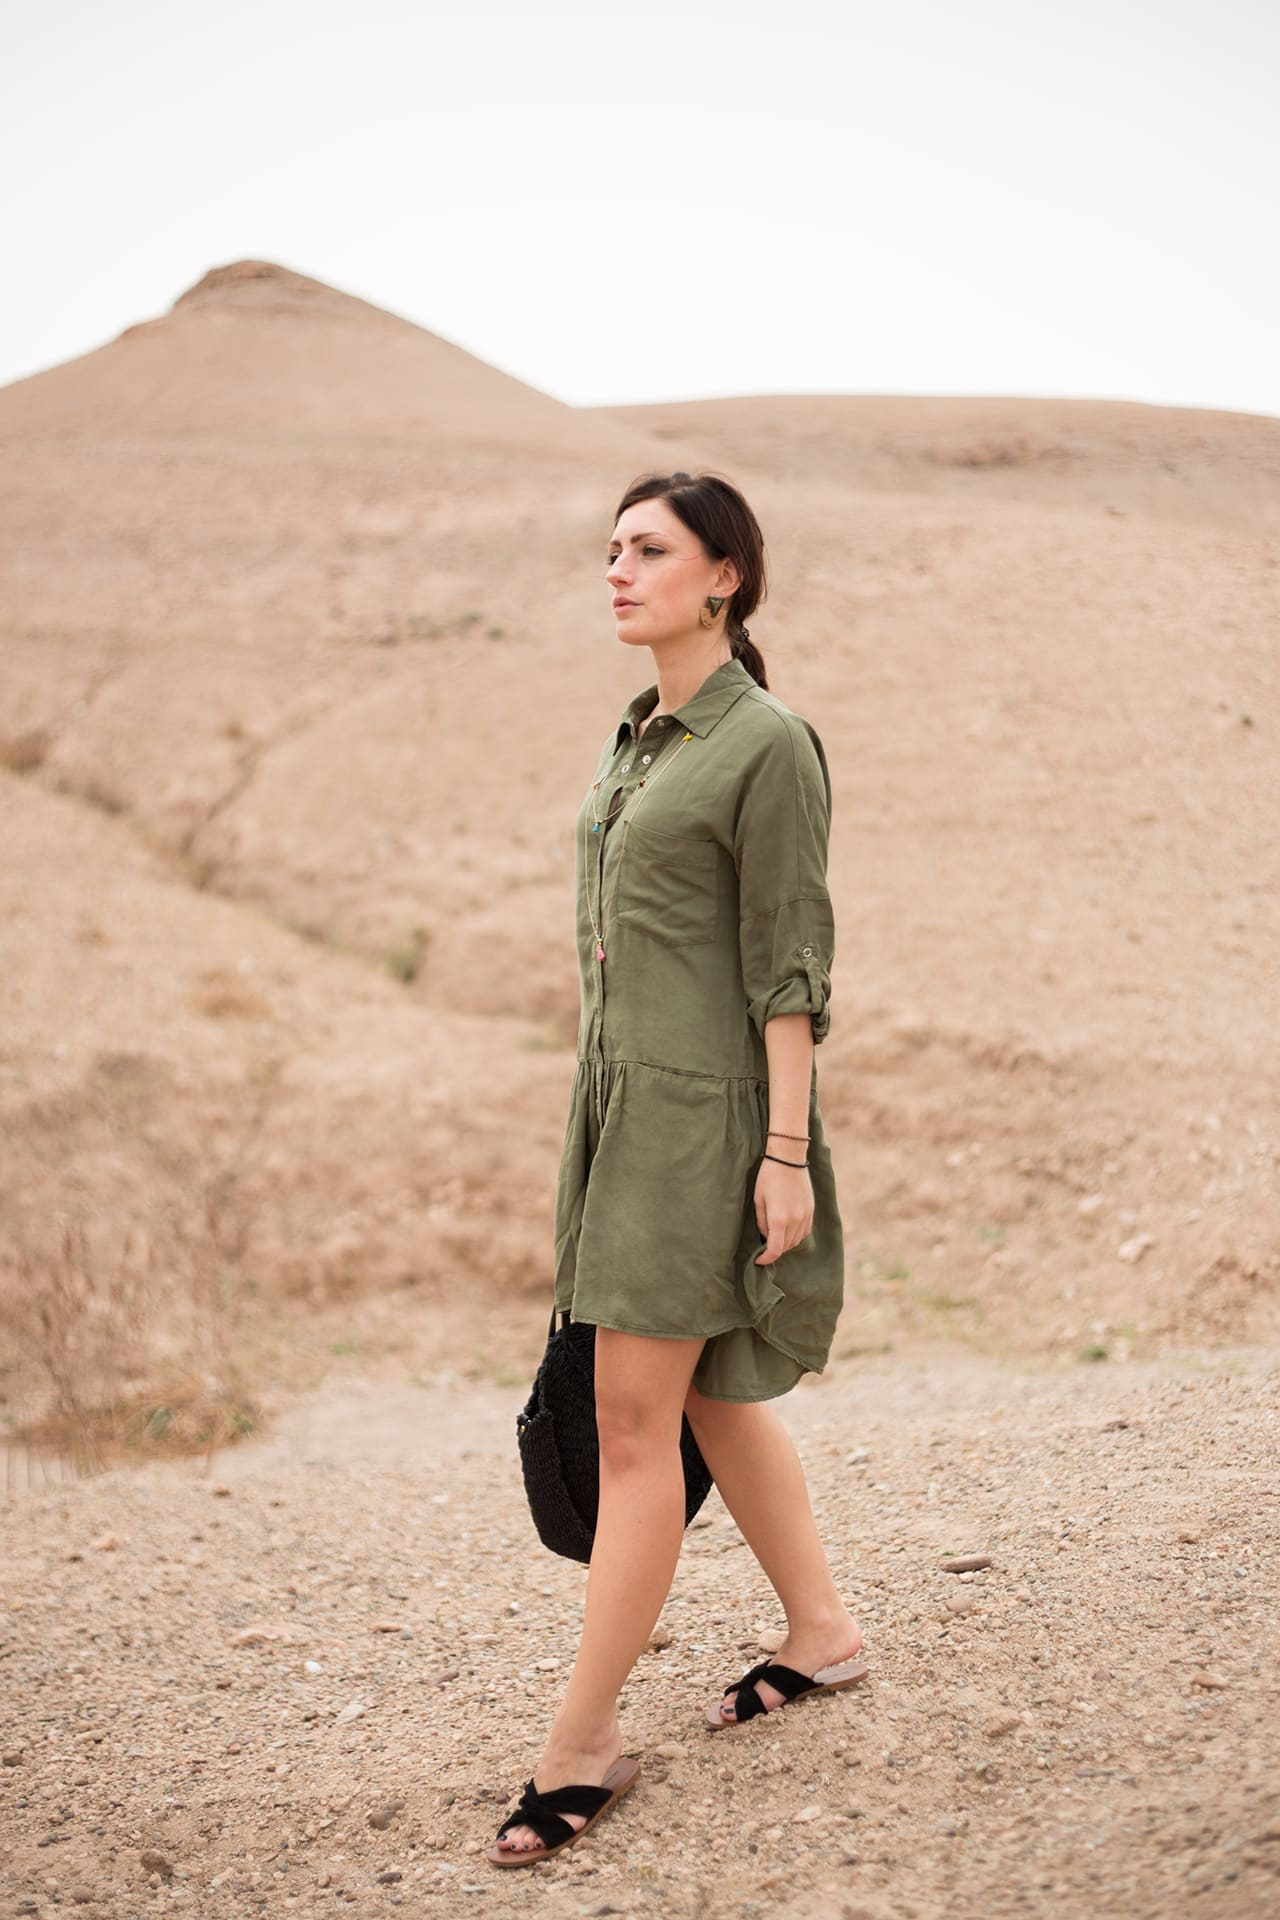 Stylisch im khaki Safari Kleid | Safarioutfit